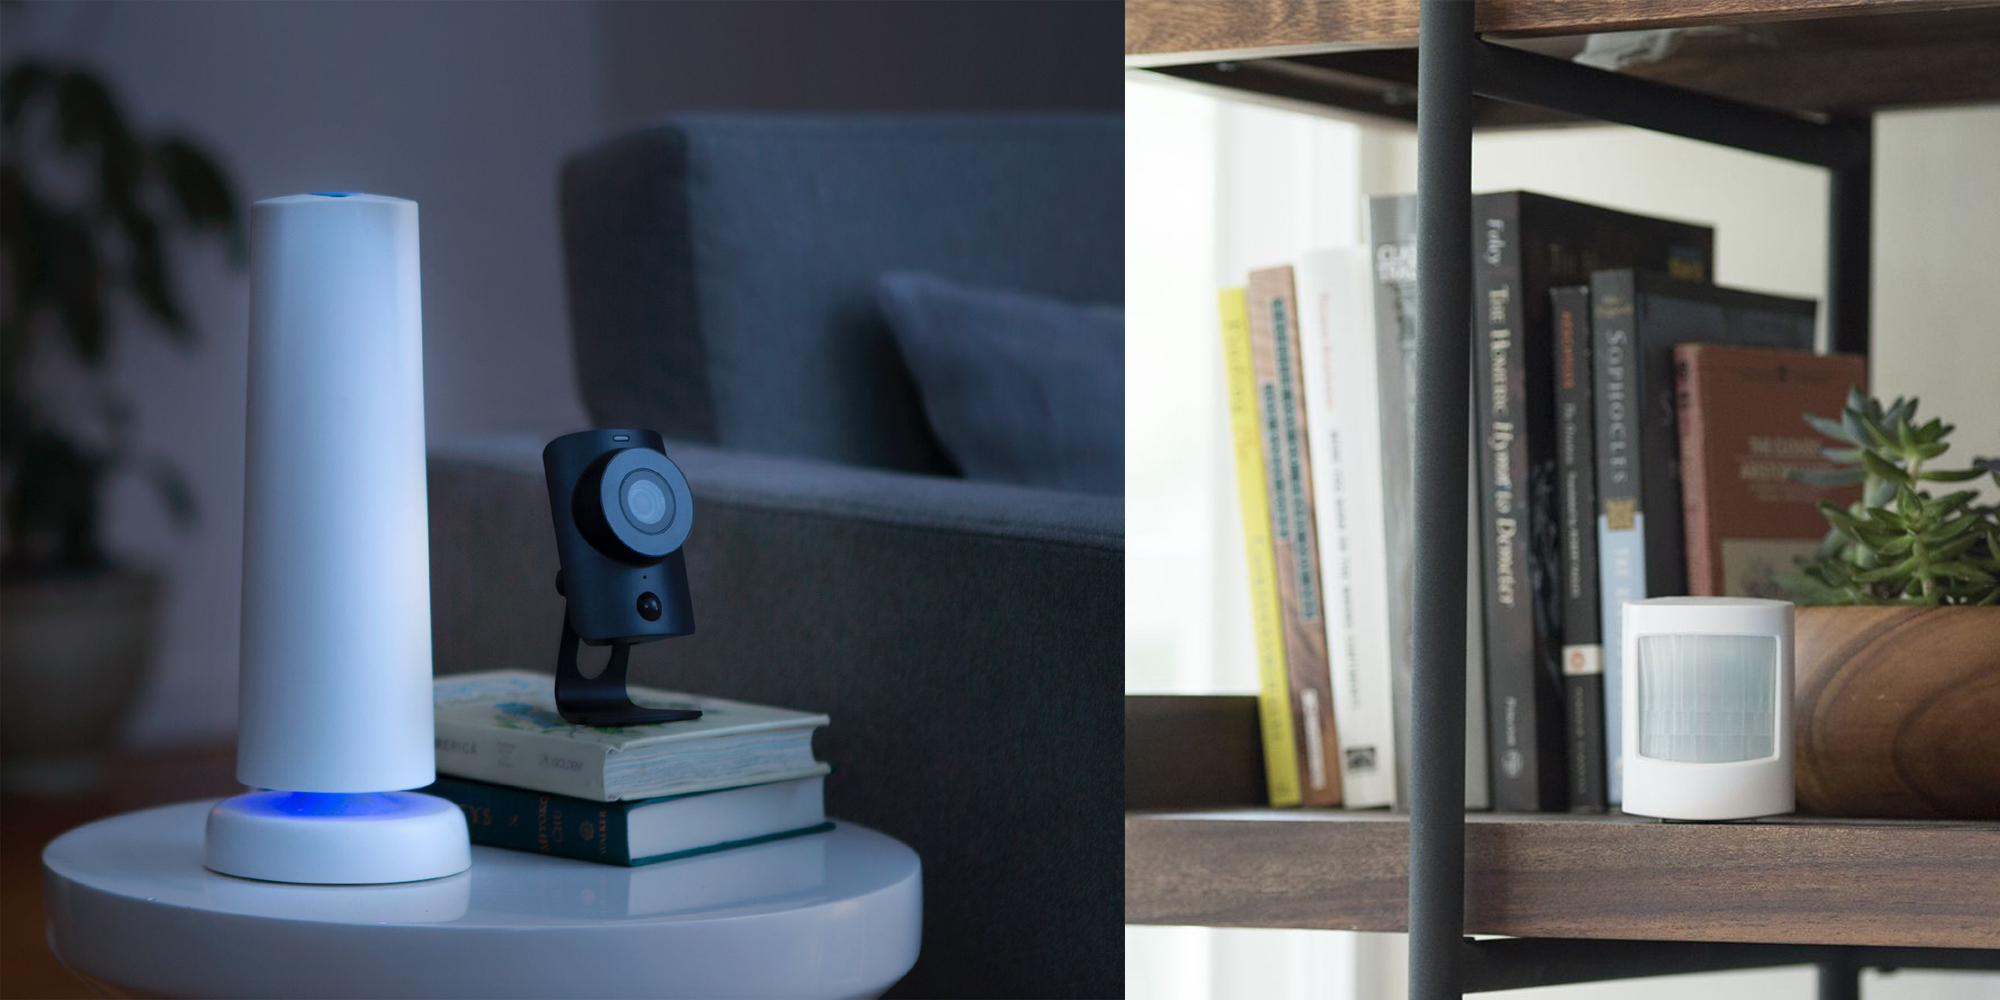 SimpliSafe's 12-Piece Security System drops to new low at $200 Prime shipped (30% off)